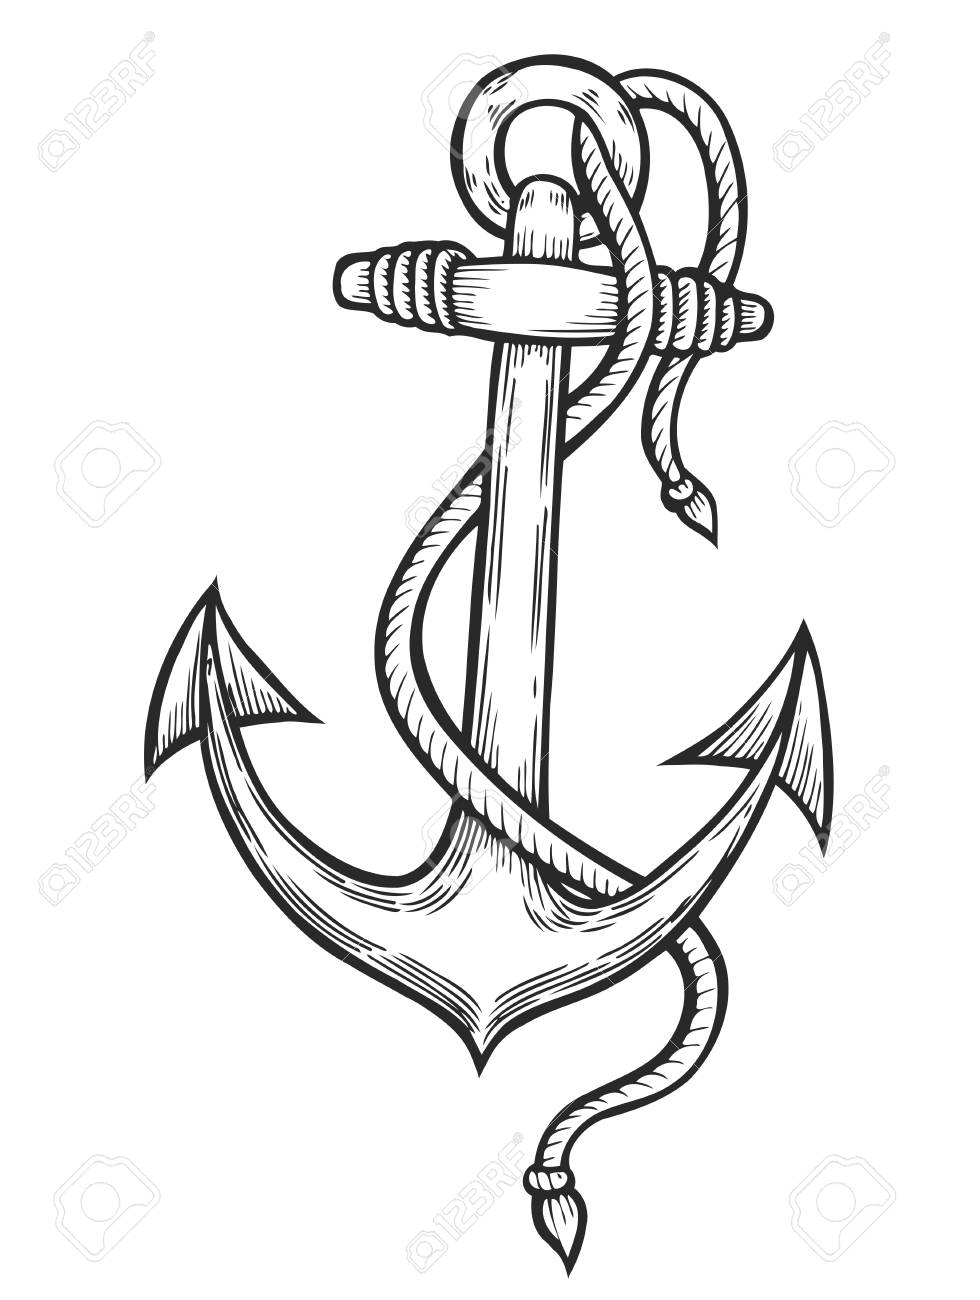 980x1300 Drawn Rope Anchor Rope